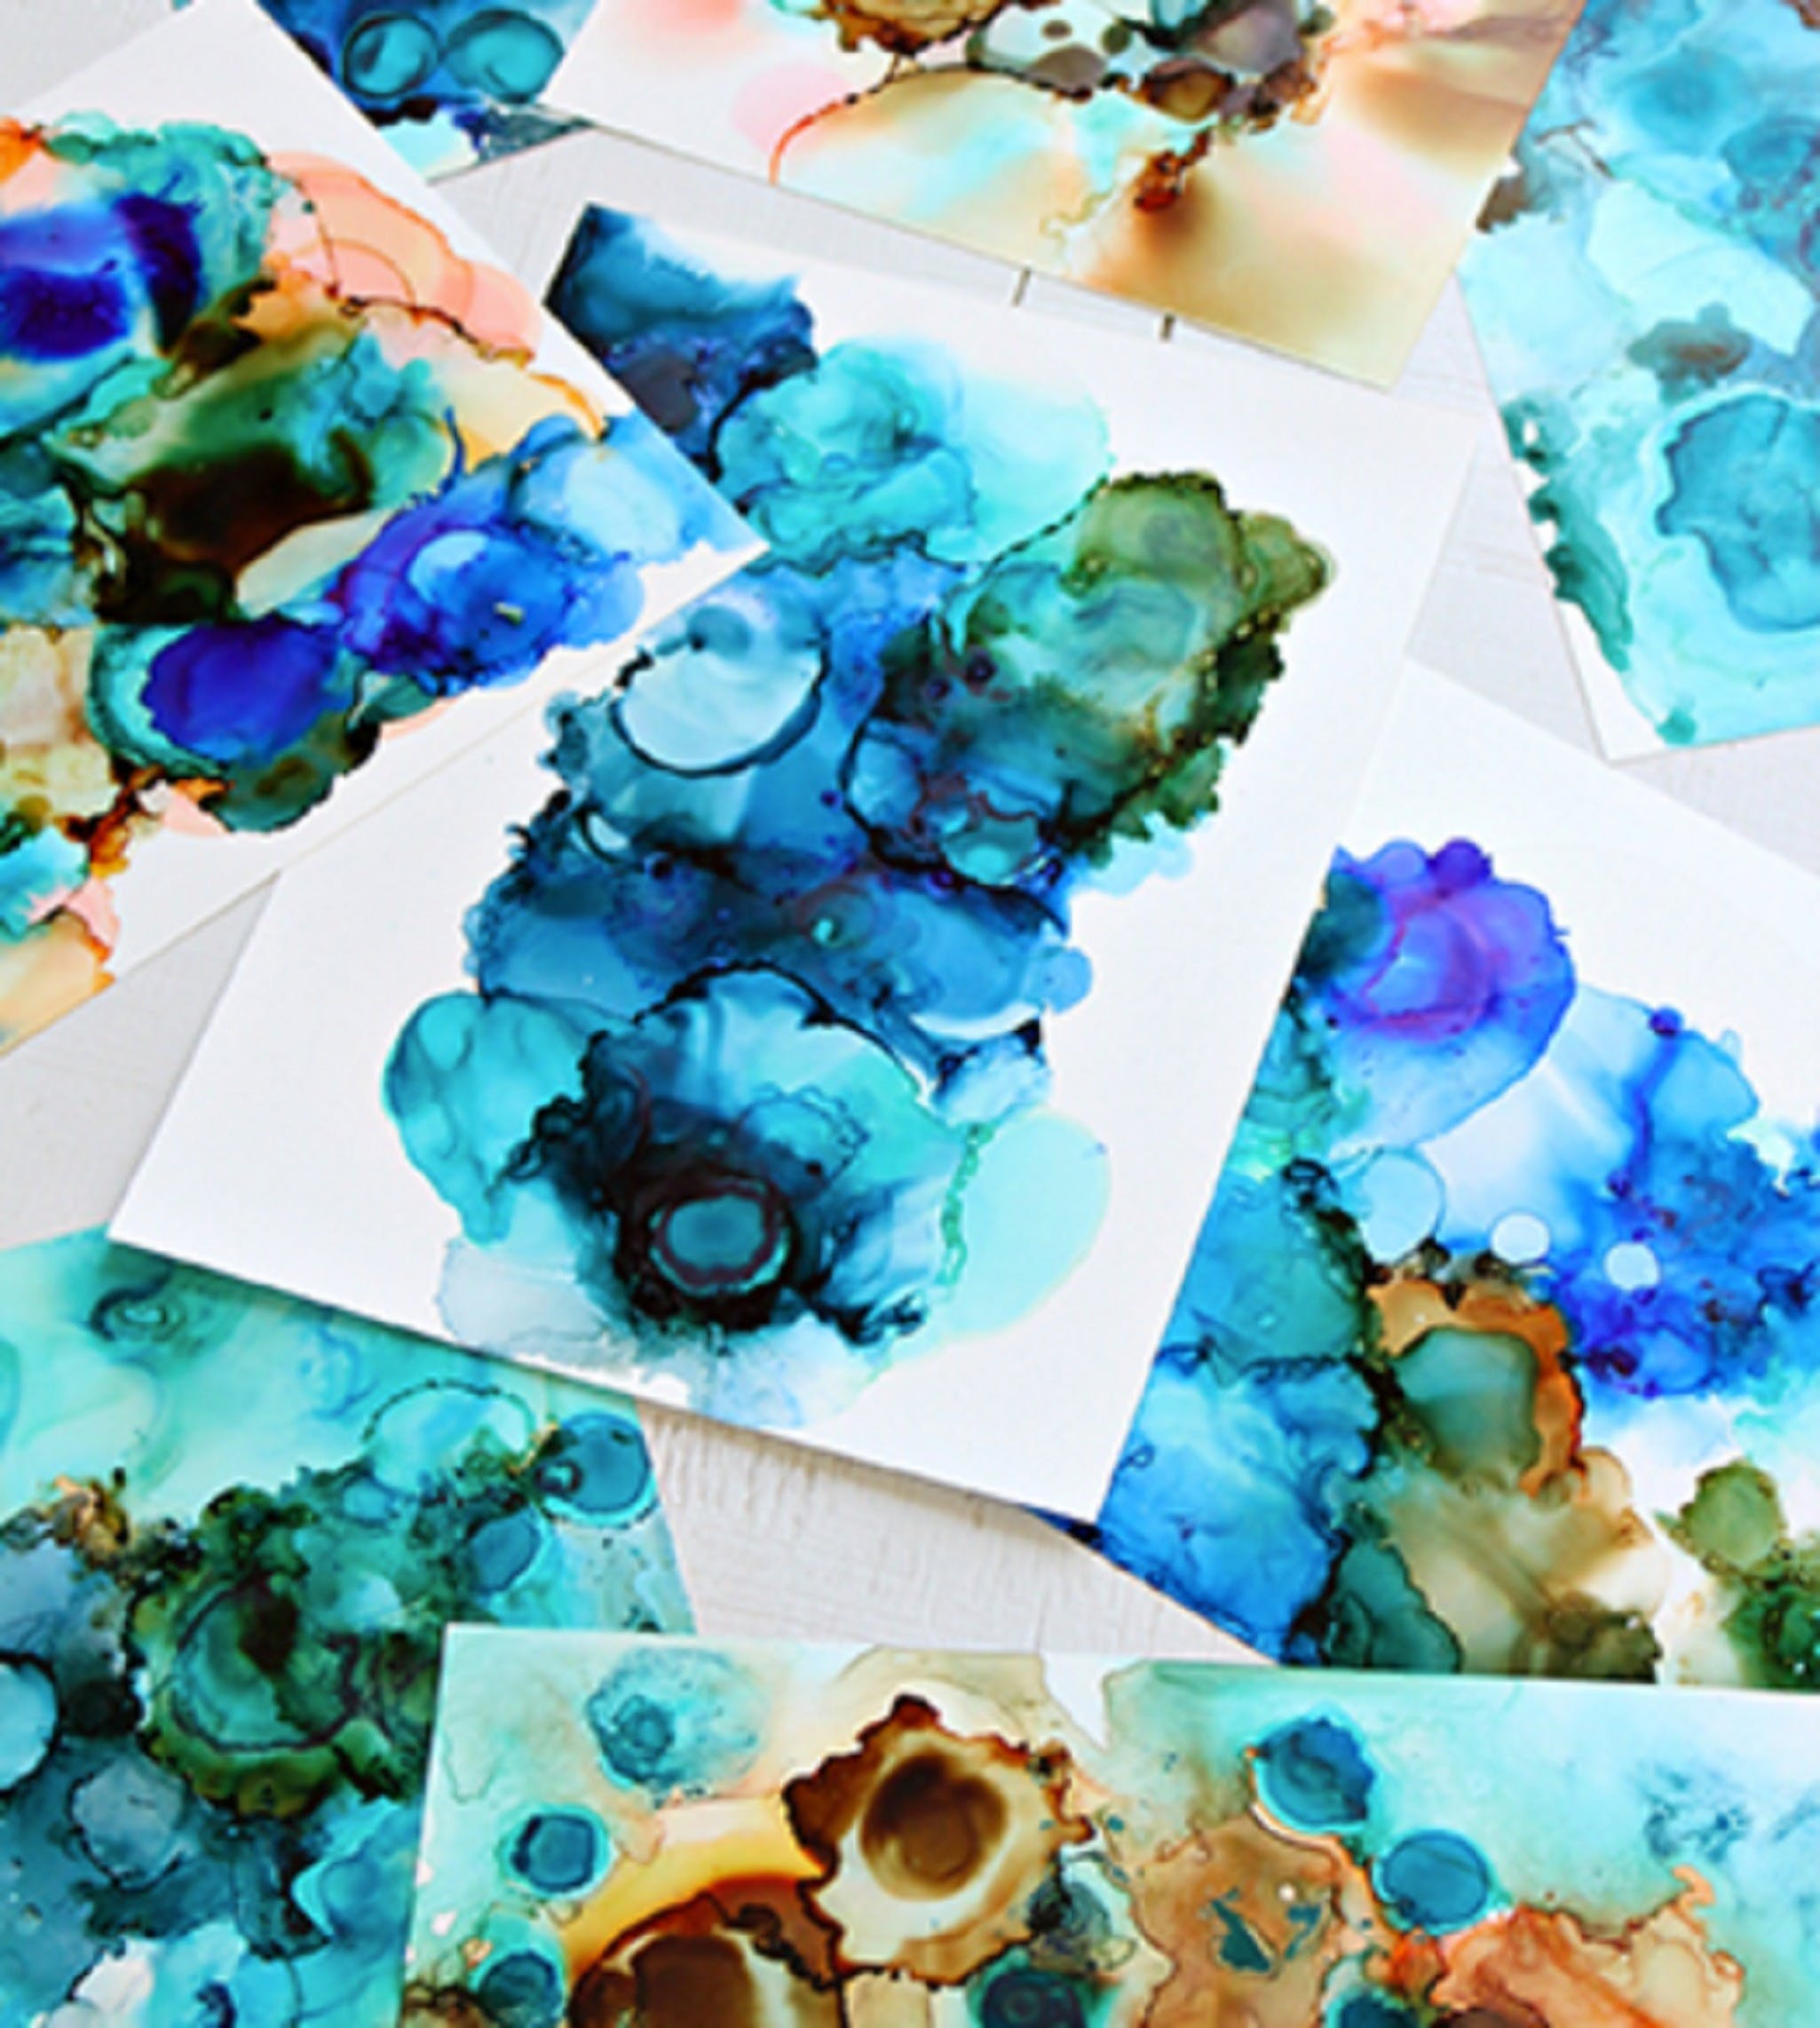 Alcohol Ink Art Class - Accommodation Nelson Bay